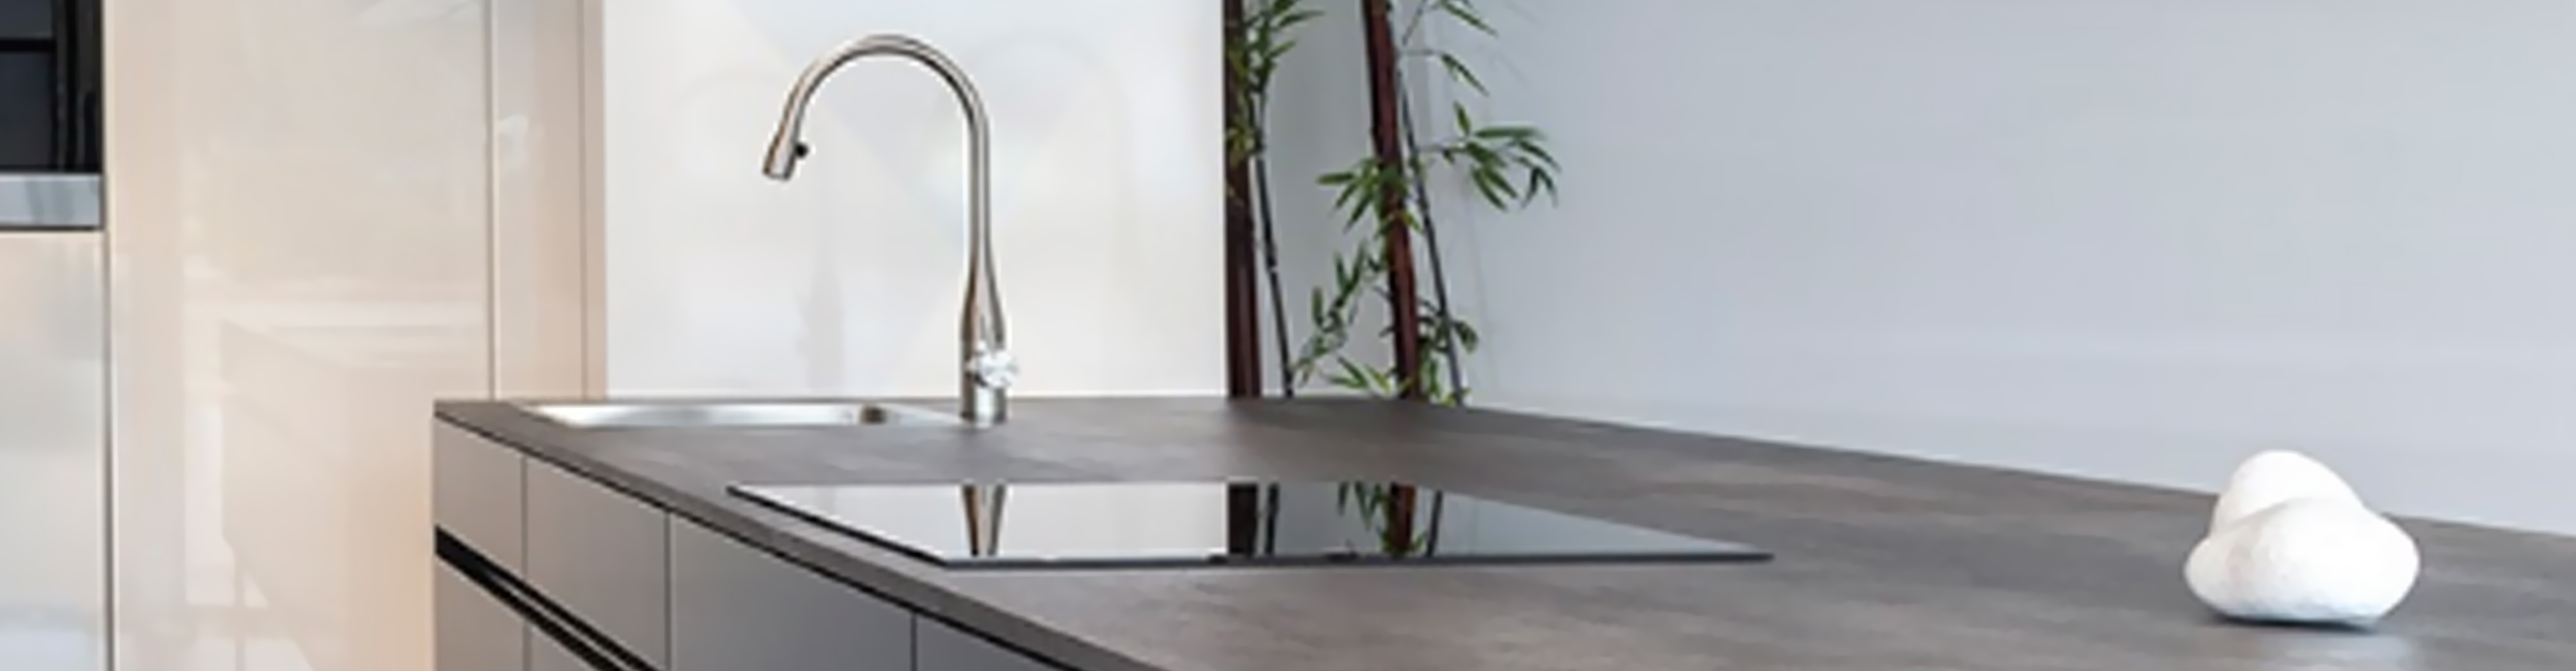 Neolith Ceramic Worksurface